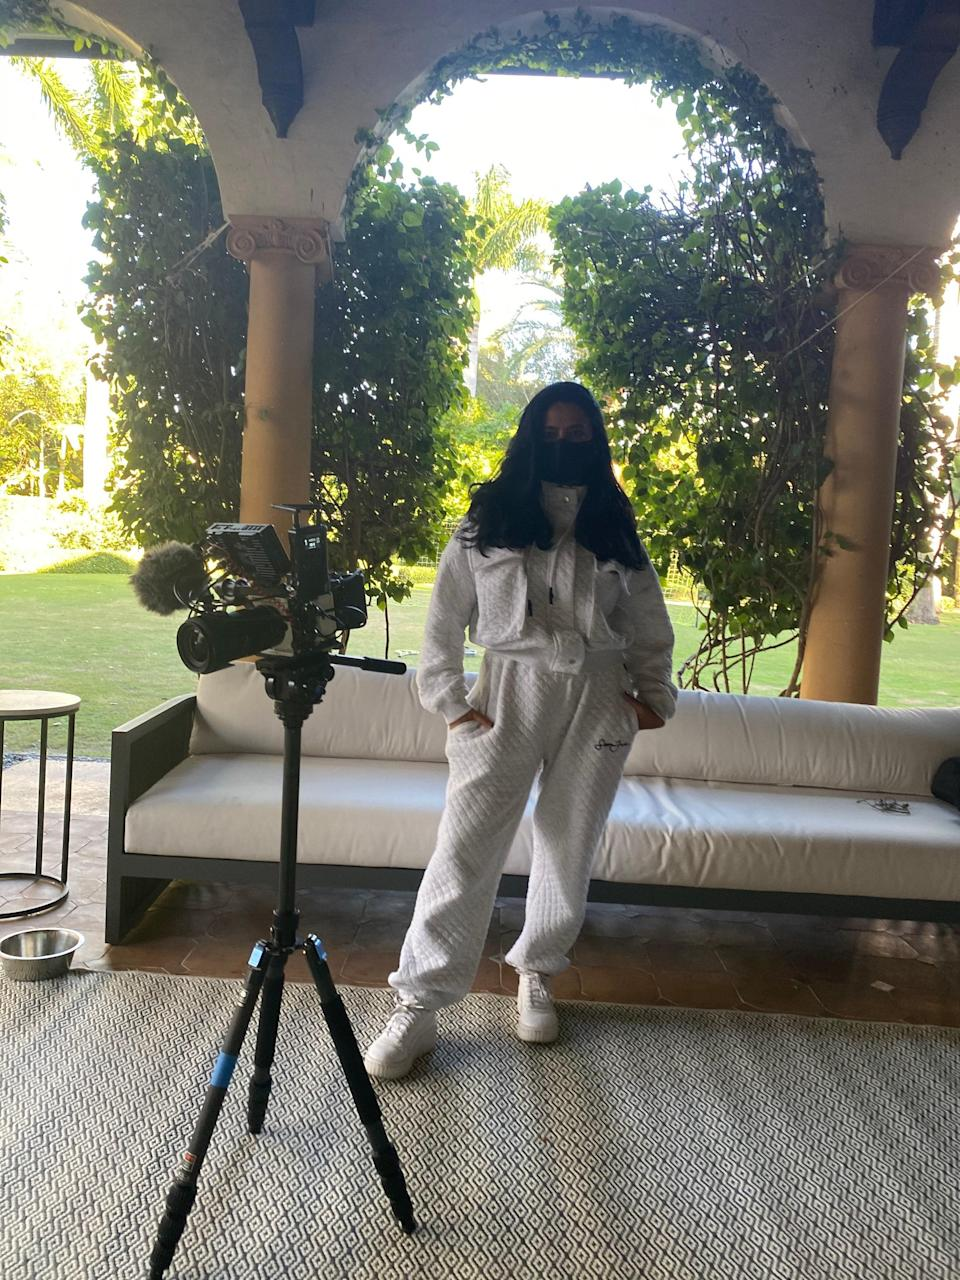 Reshma B during the filming of Studio 17: The Lost Reggae Tapes, 2019.